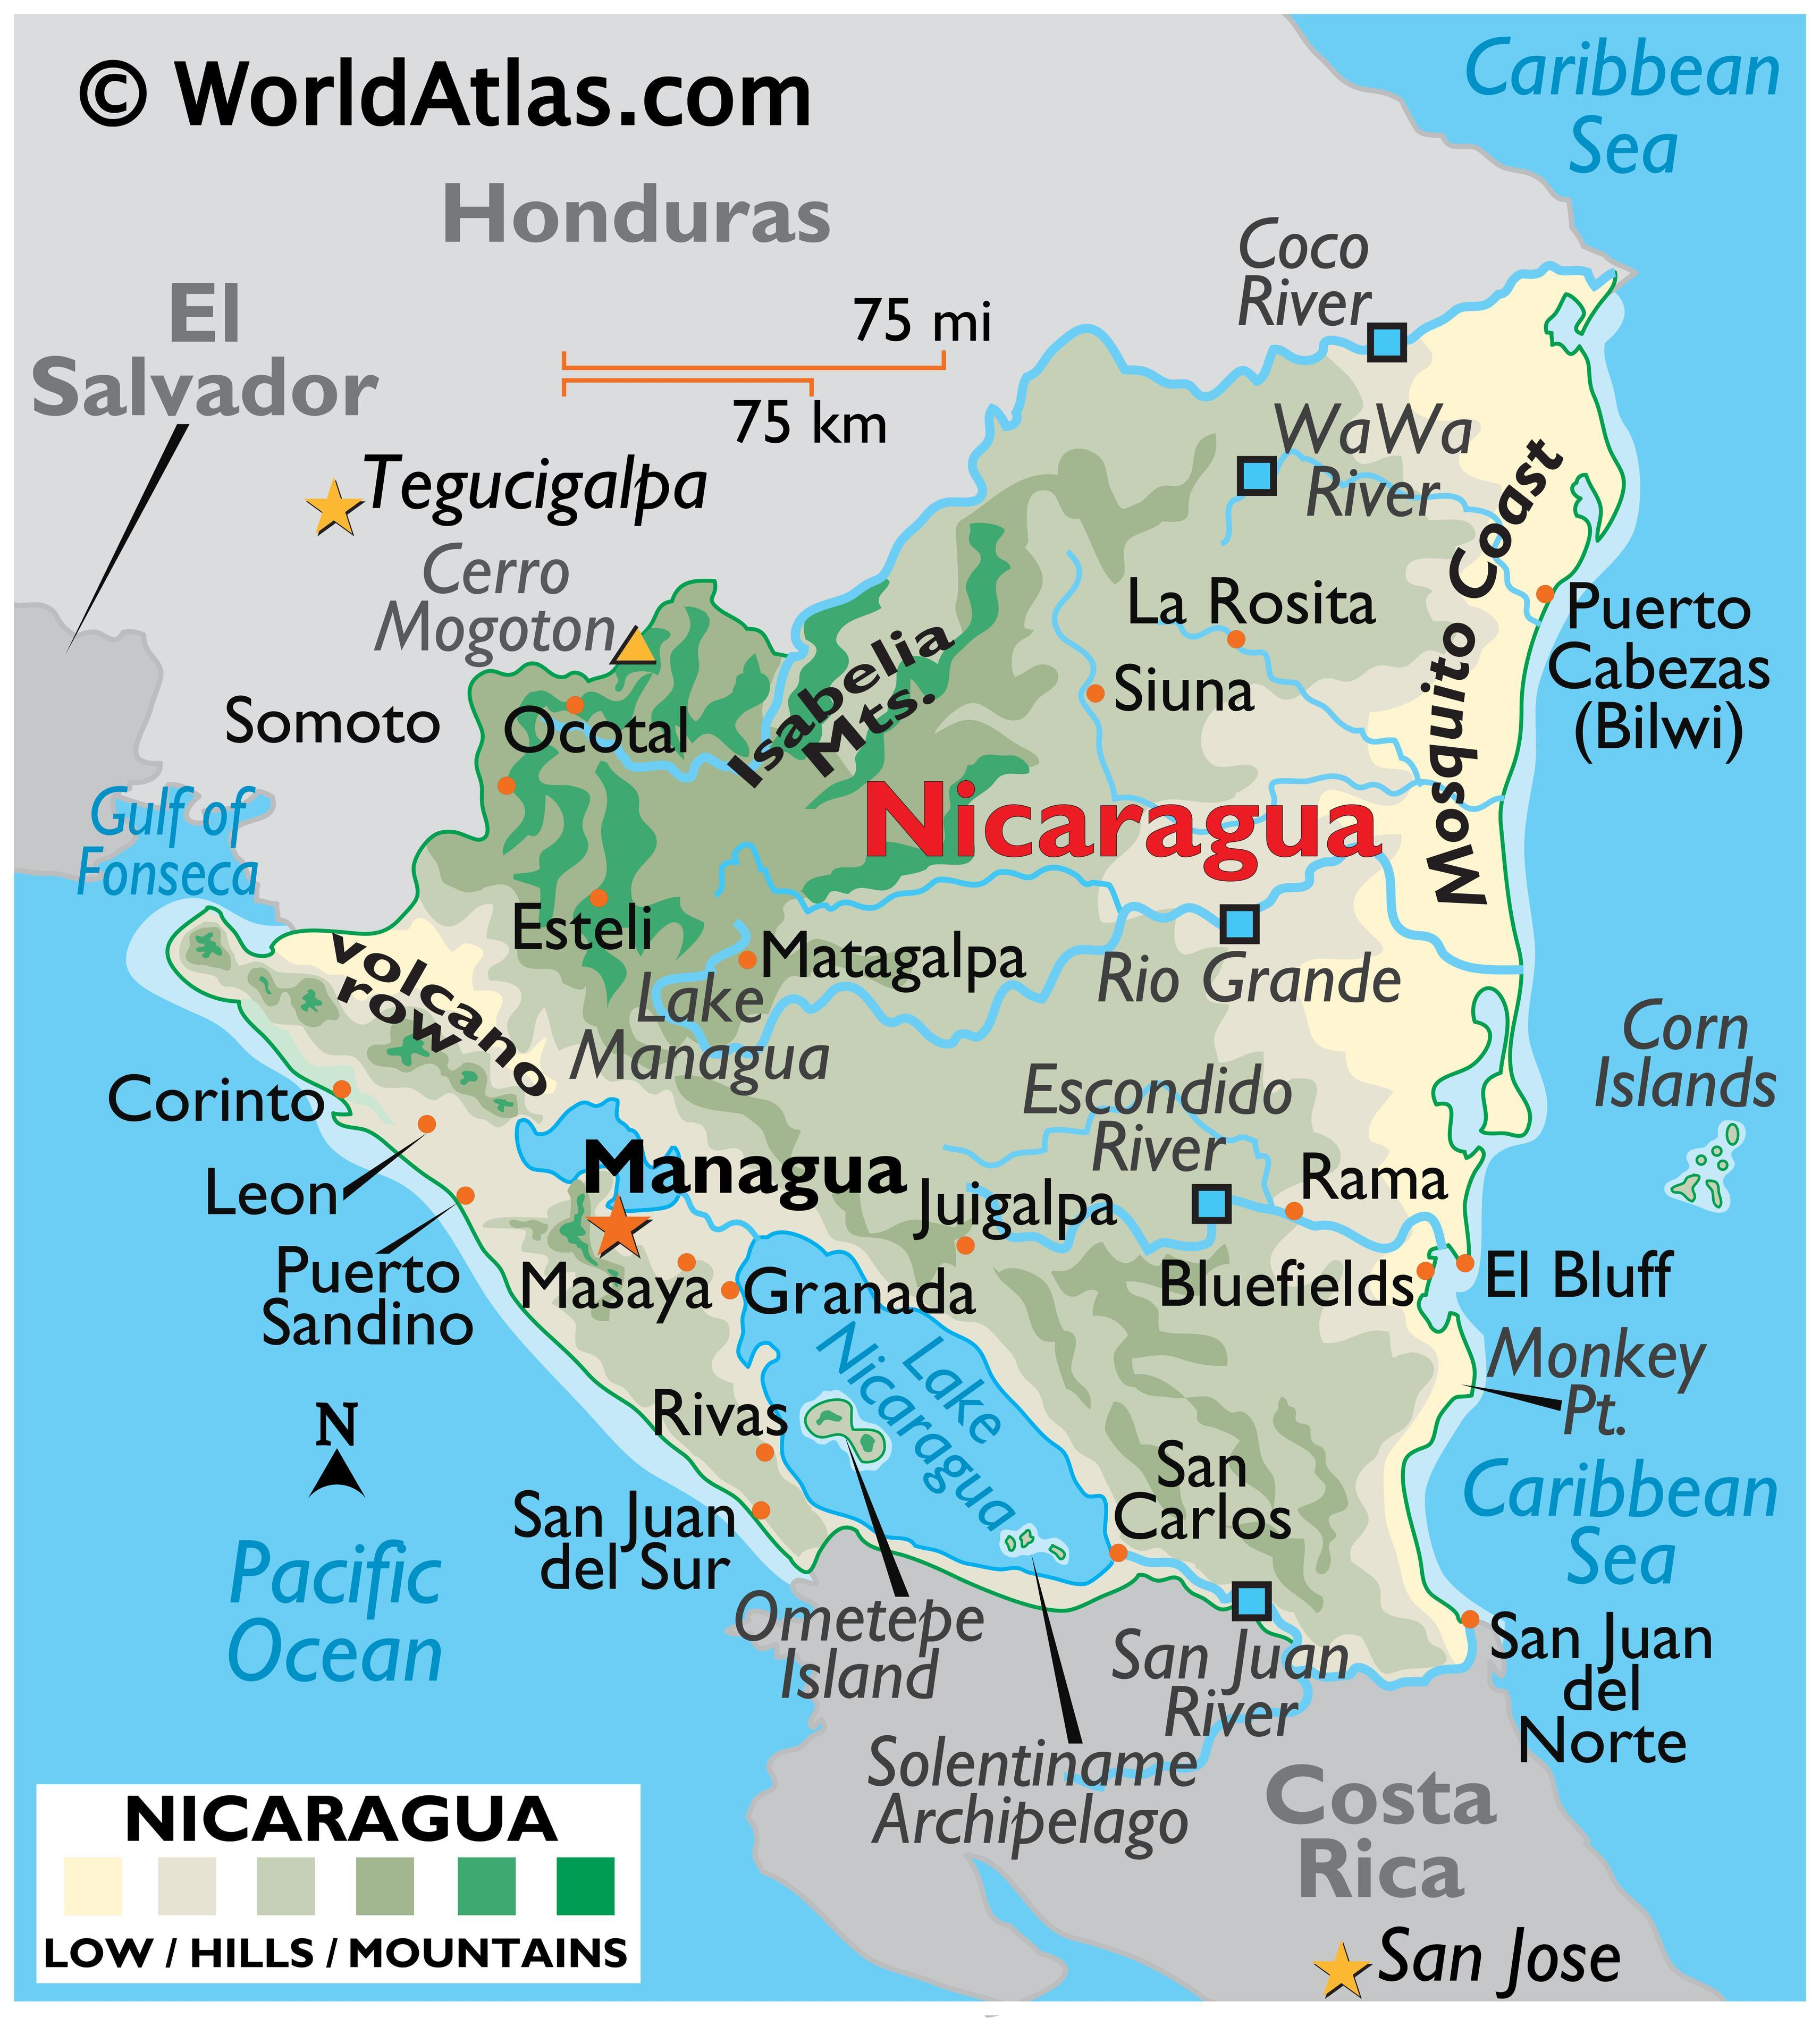 Physical Map of Nicaragua showing terrain, mountains, extreme points, Mosquito coast, volcanoes, rivers, lakes, major cities, international boundaries, etc.